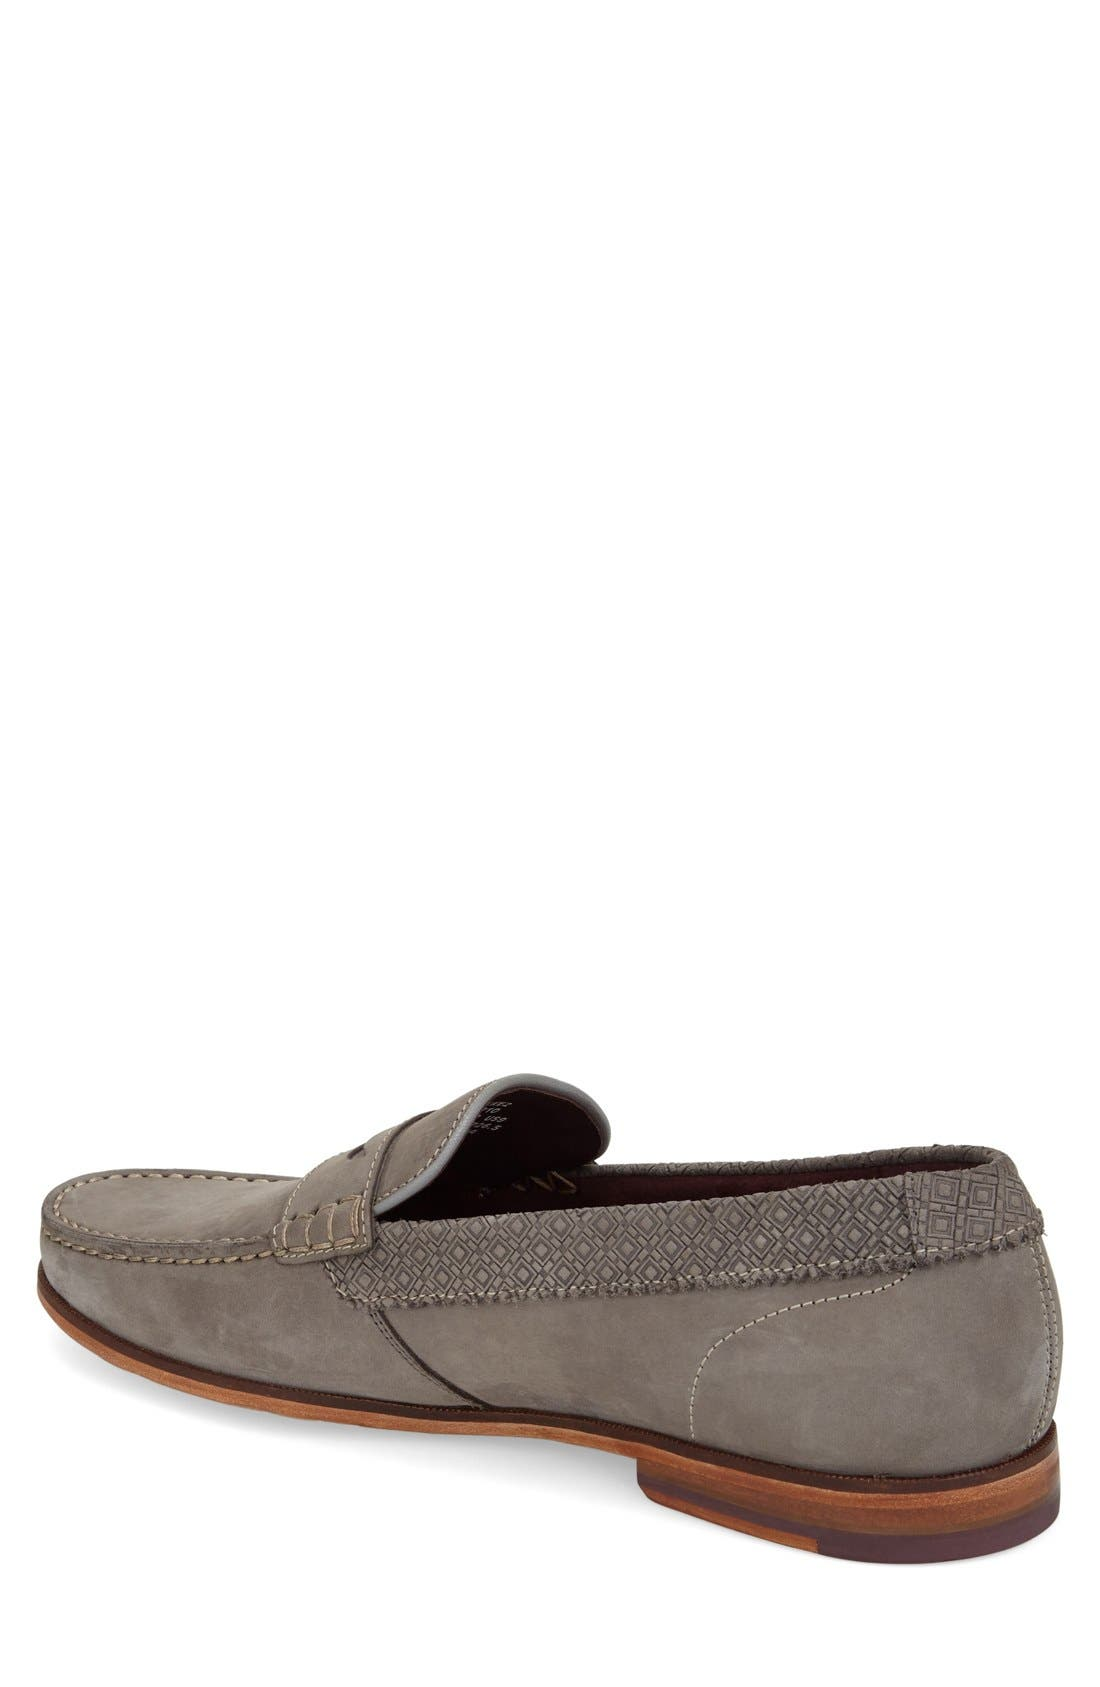 'Miicke 2' Penny Loafer,                             Alternate thumbnail 4, color,                             055